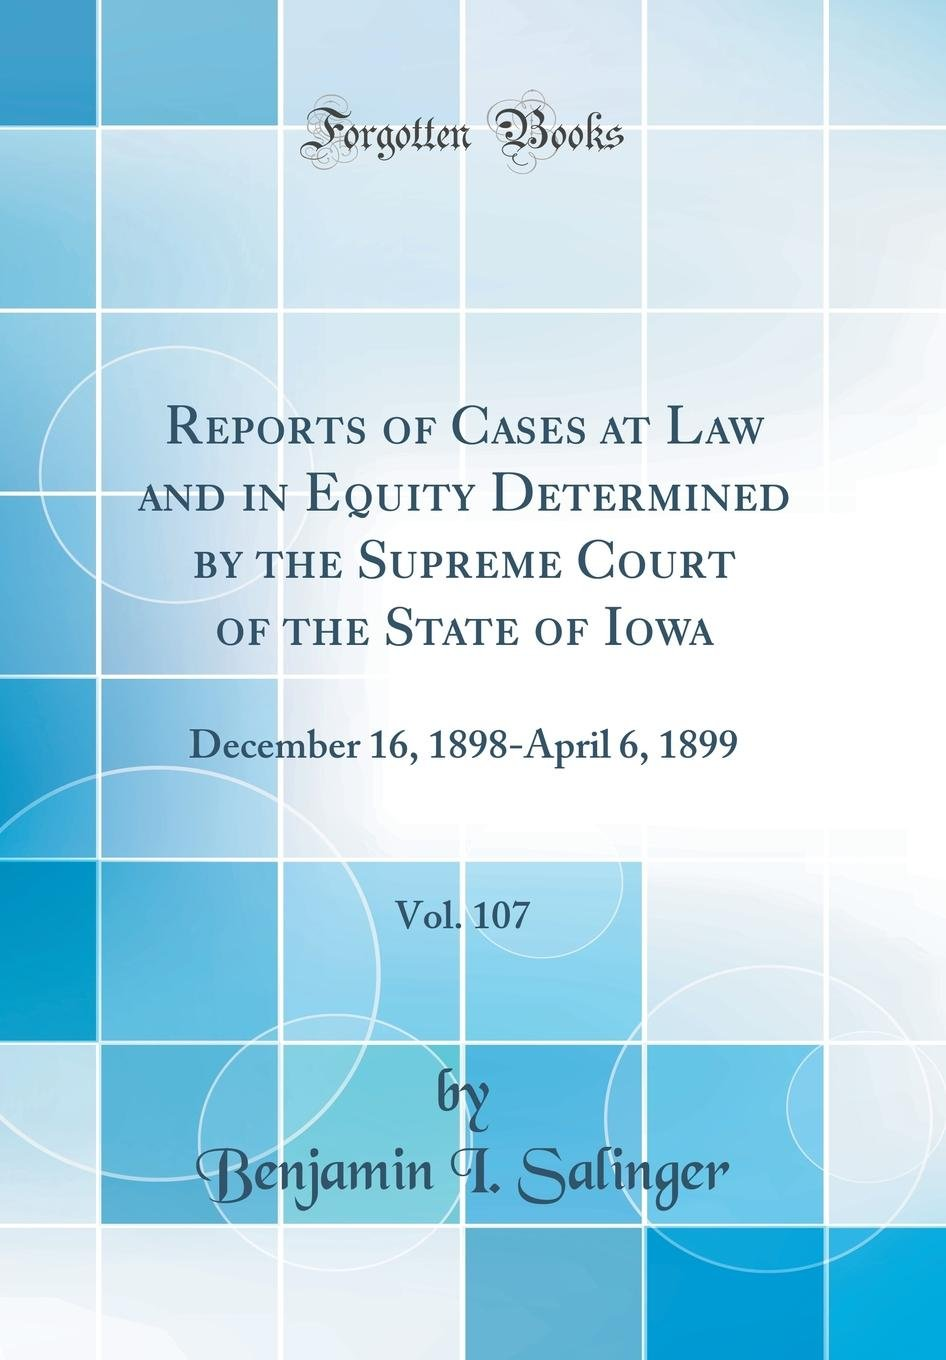 Download Reports of Cases at Law and in Equity Determined by the Supreme Court of the State of Iowa, Vol. 107: December 16, 1898-April 6, 1899 (Classic Reprint) ebook